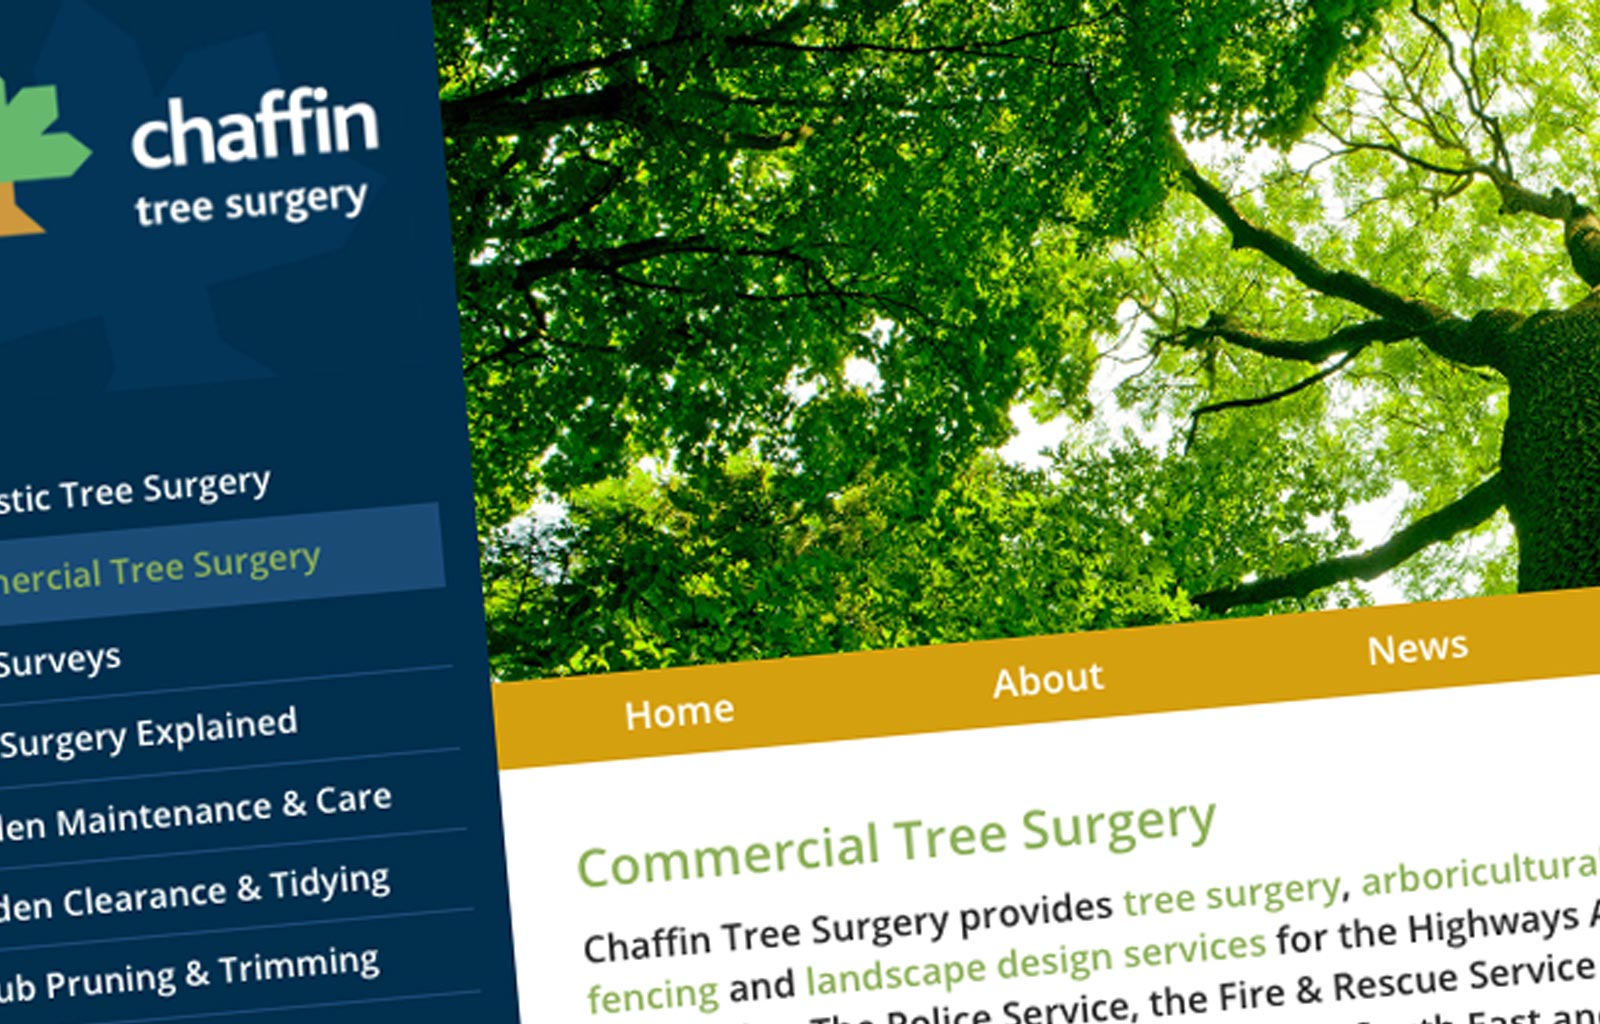 Chaffin Commercial Tree Surgery